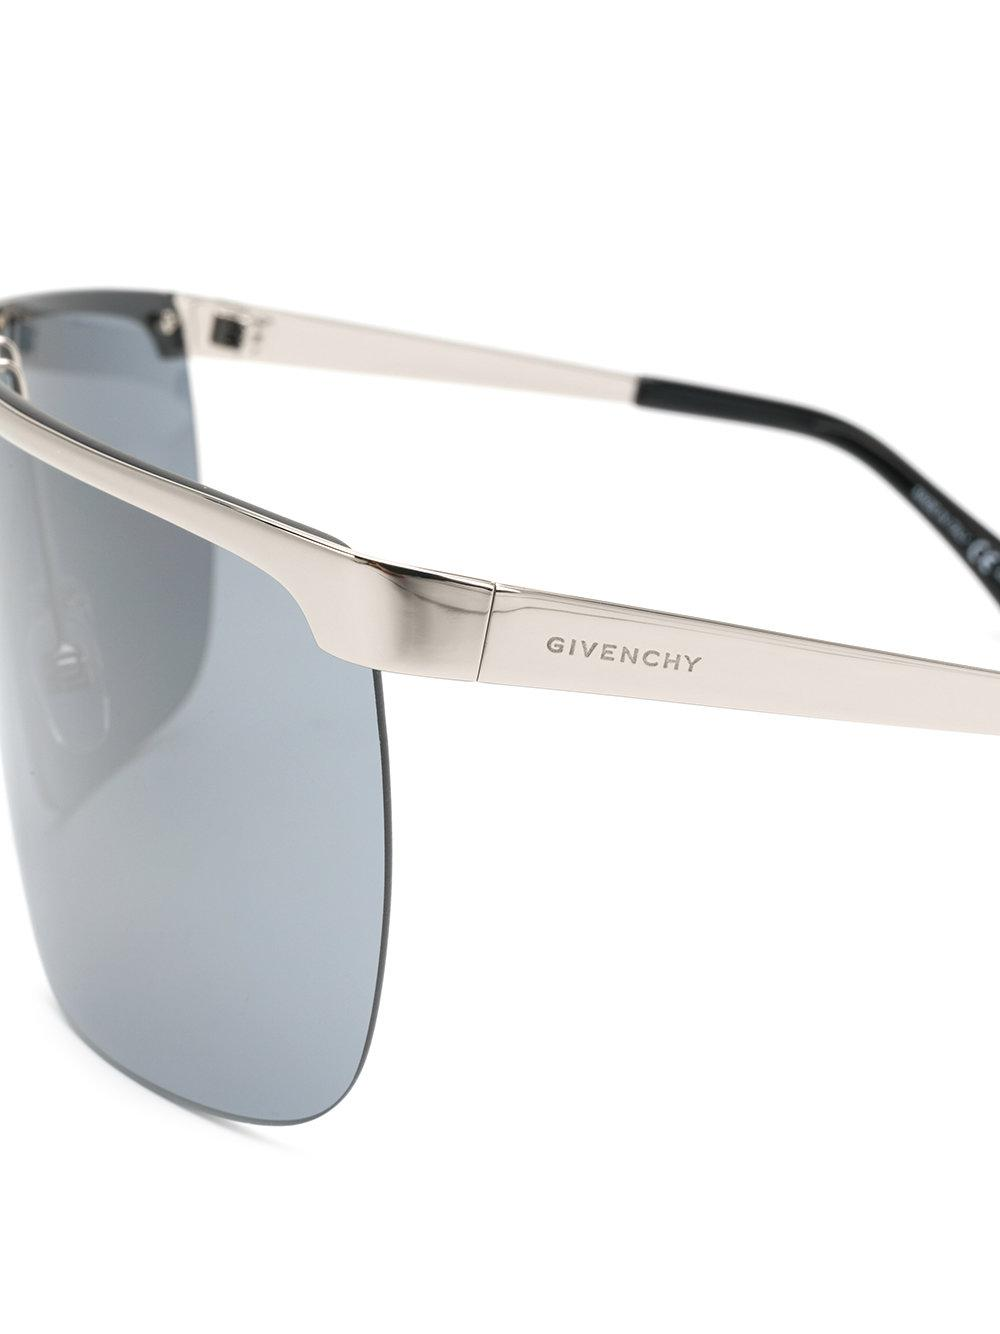 Givenchy Oversized Sunglasses in Metallic for Men